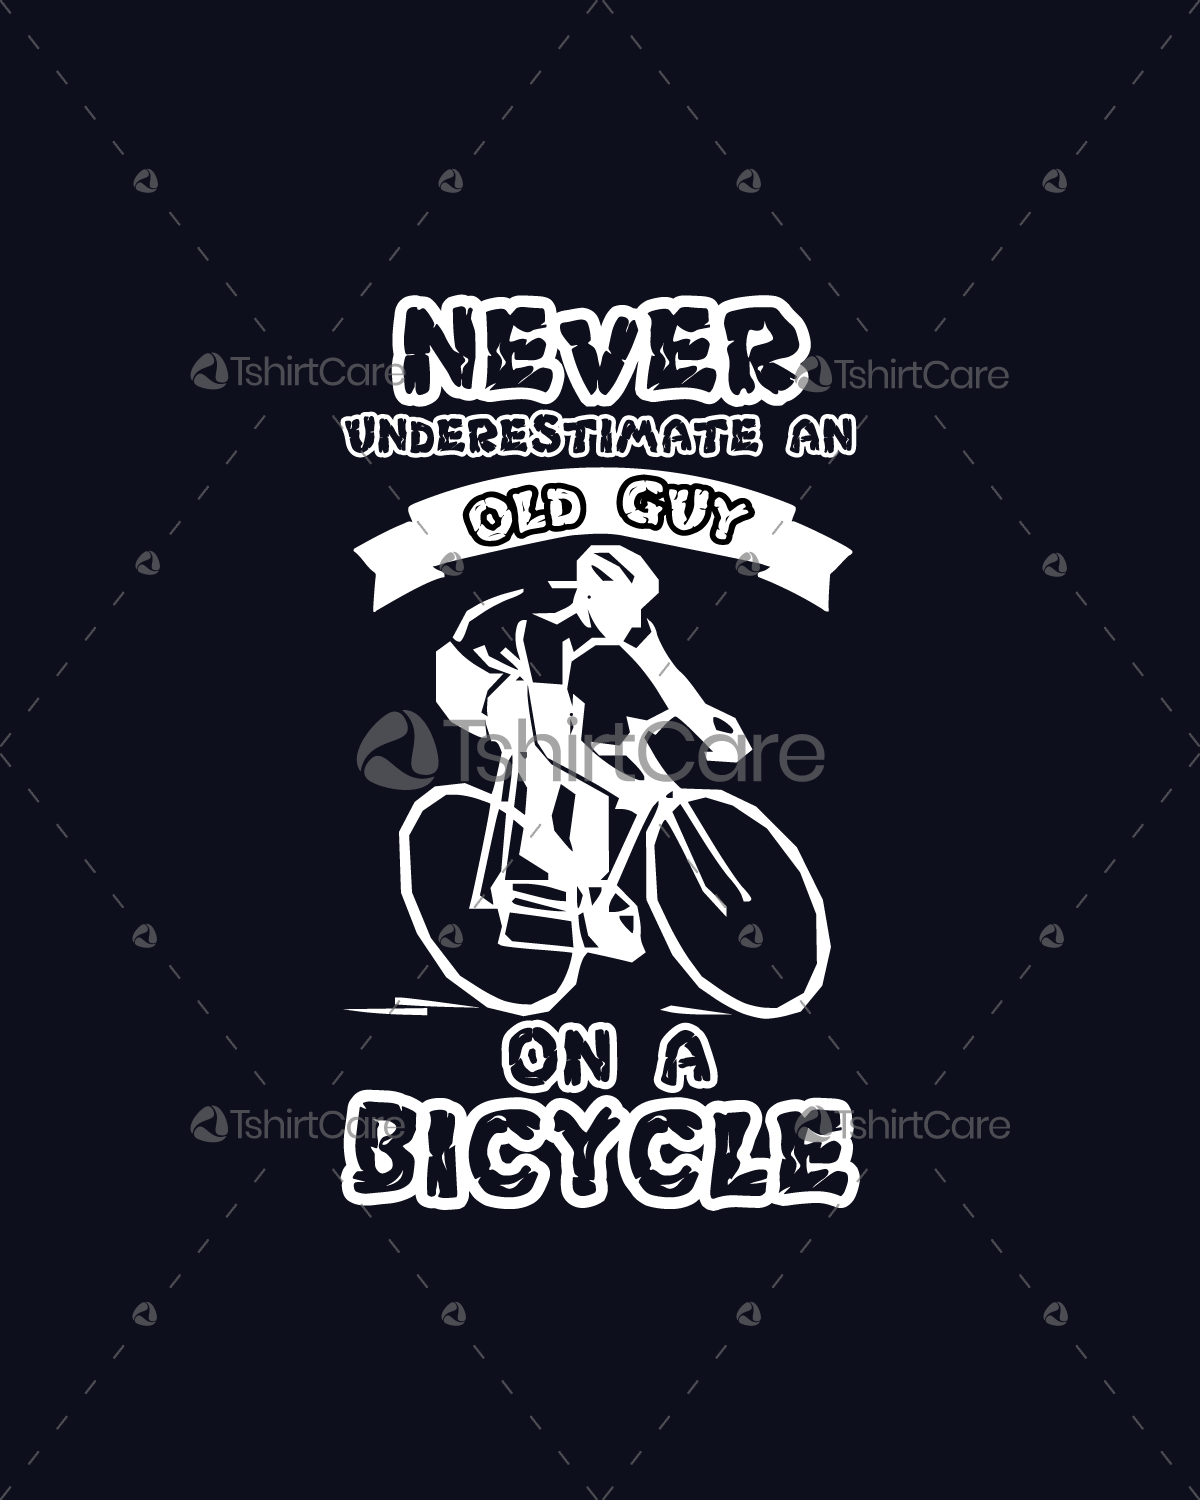 007880425bd2 Never underestimate an old guy on a bicycle T shirt Design for Cycling Men  & Women T-Shirt - TshirtCare